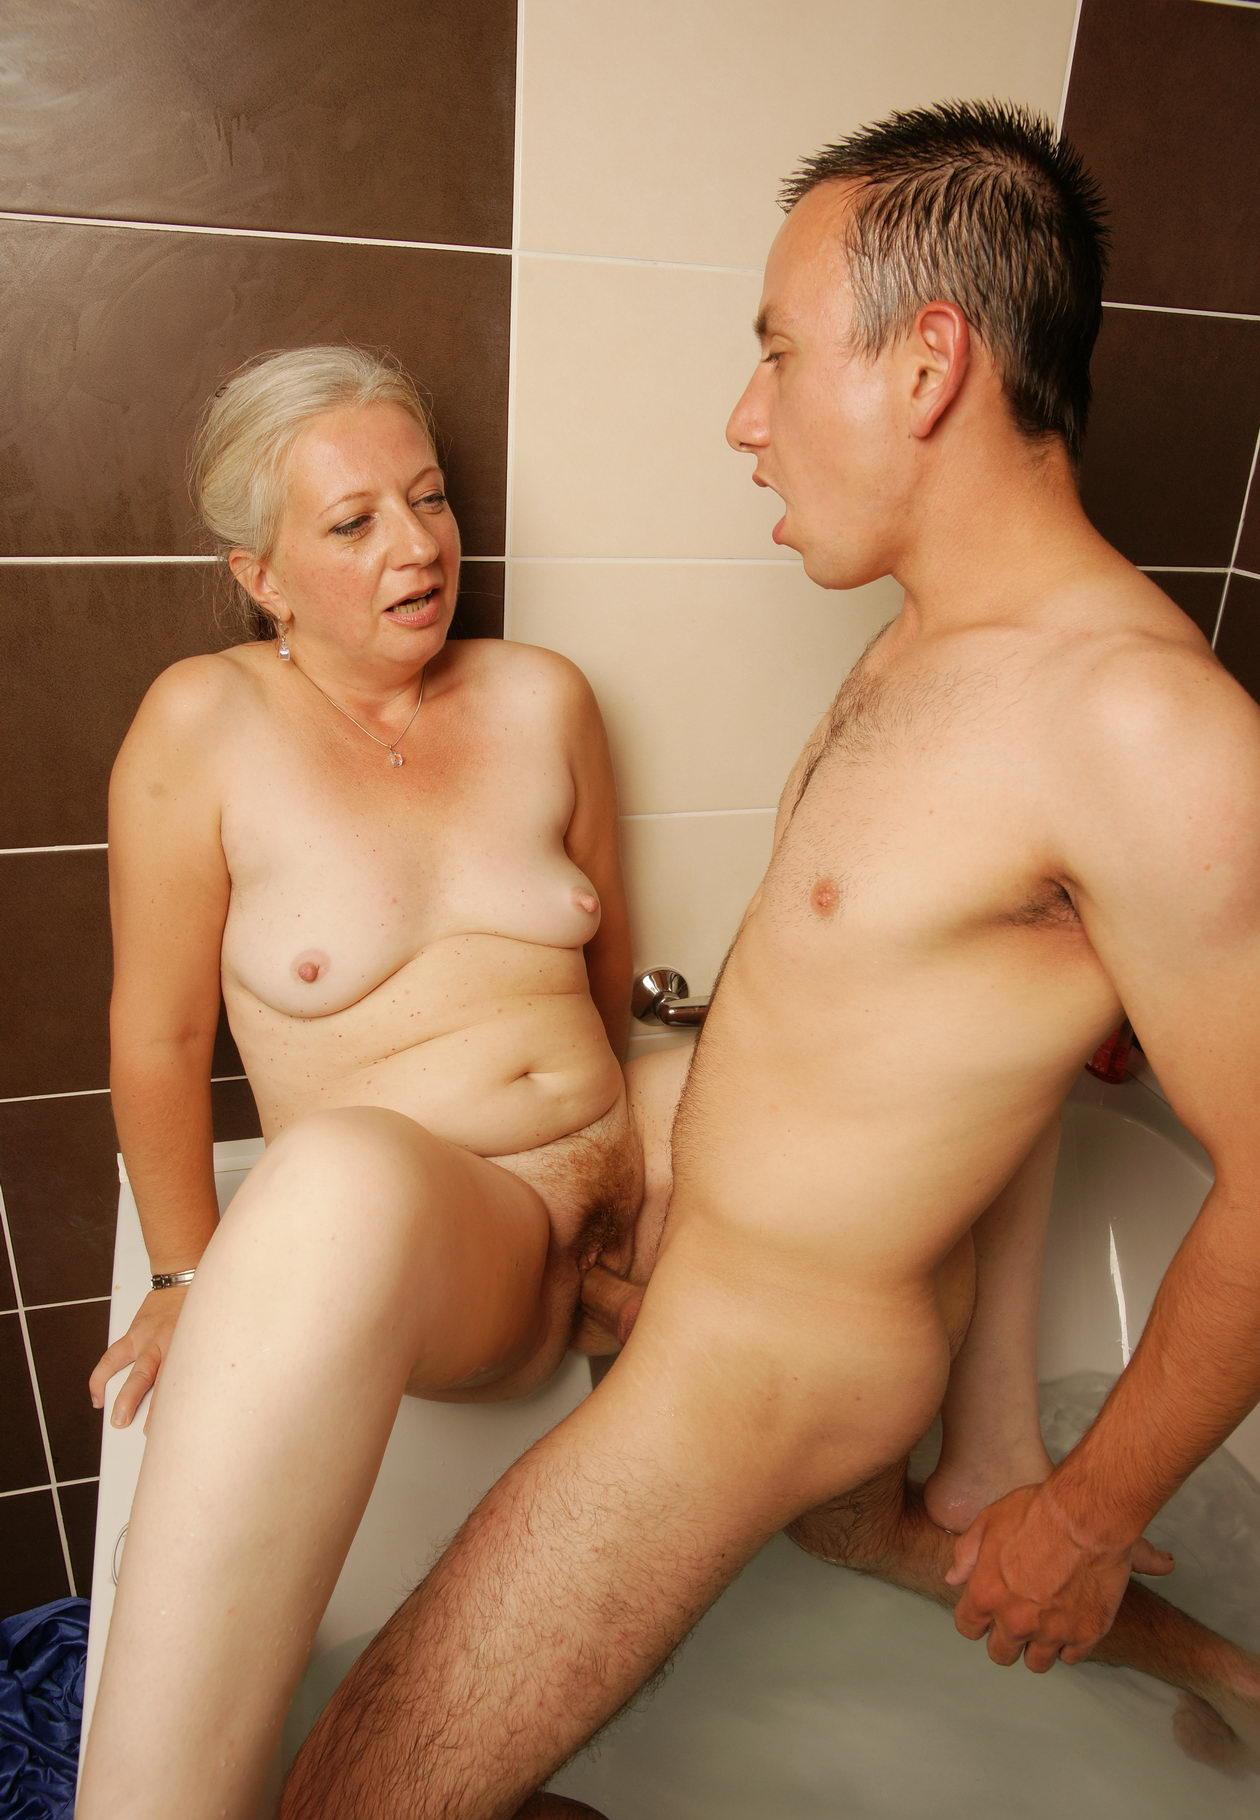 Randi a perverted granny has still a tight pussy for her age